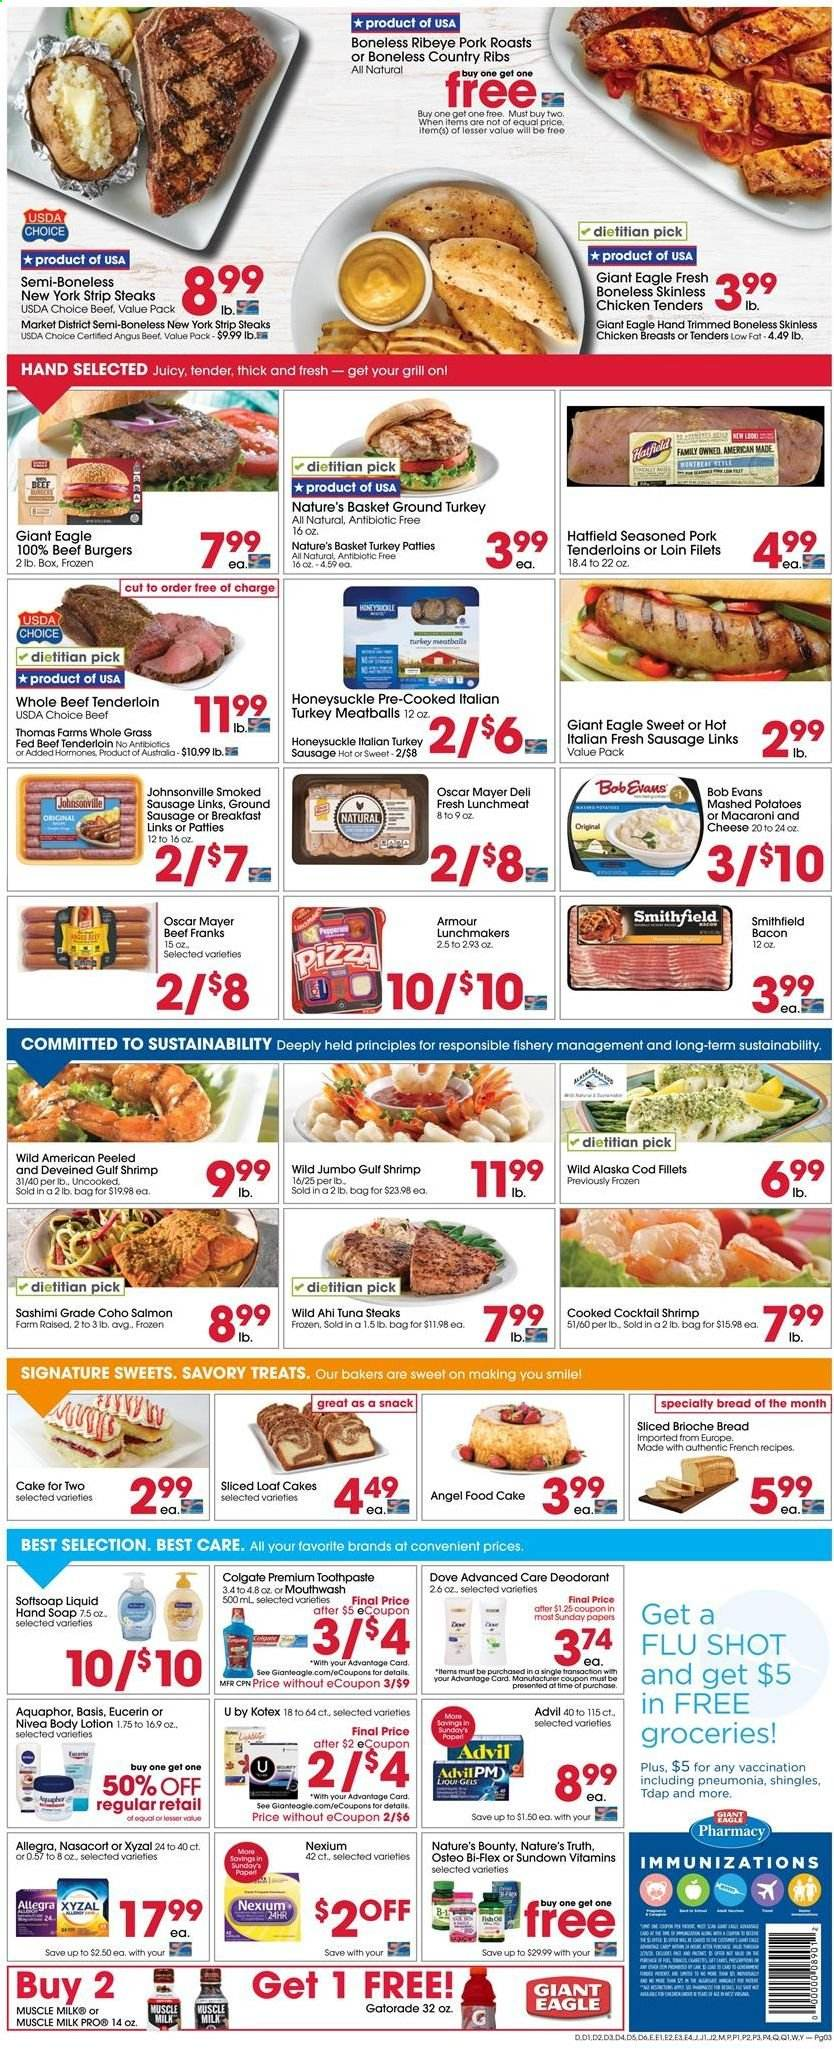 Giant Eagle Flyer  - 08.15.2019 - 08.21.2019. Page 3.